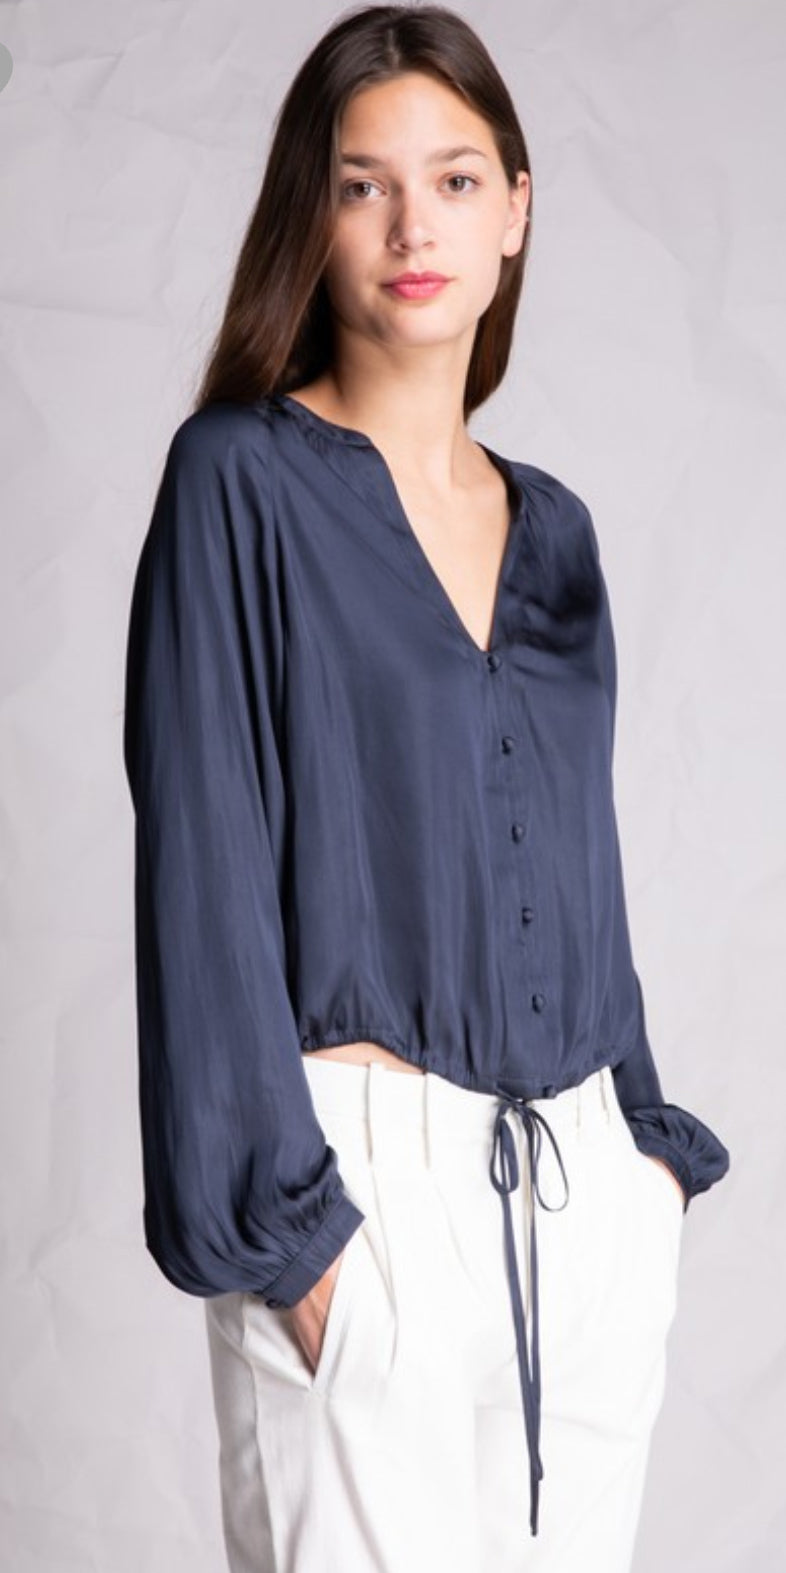 With Love Blouse in Midnight